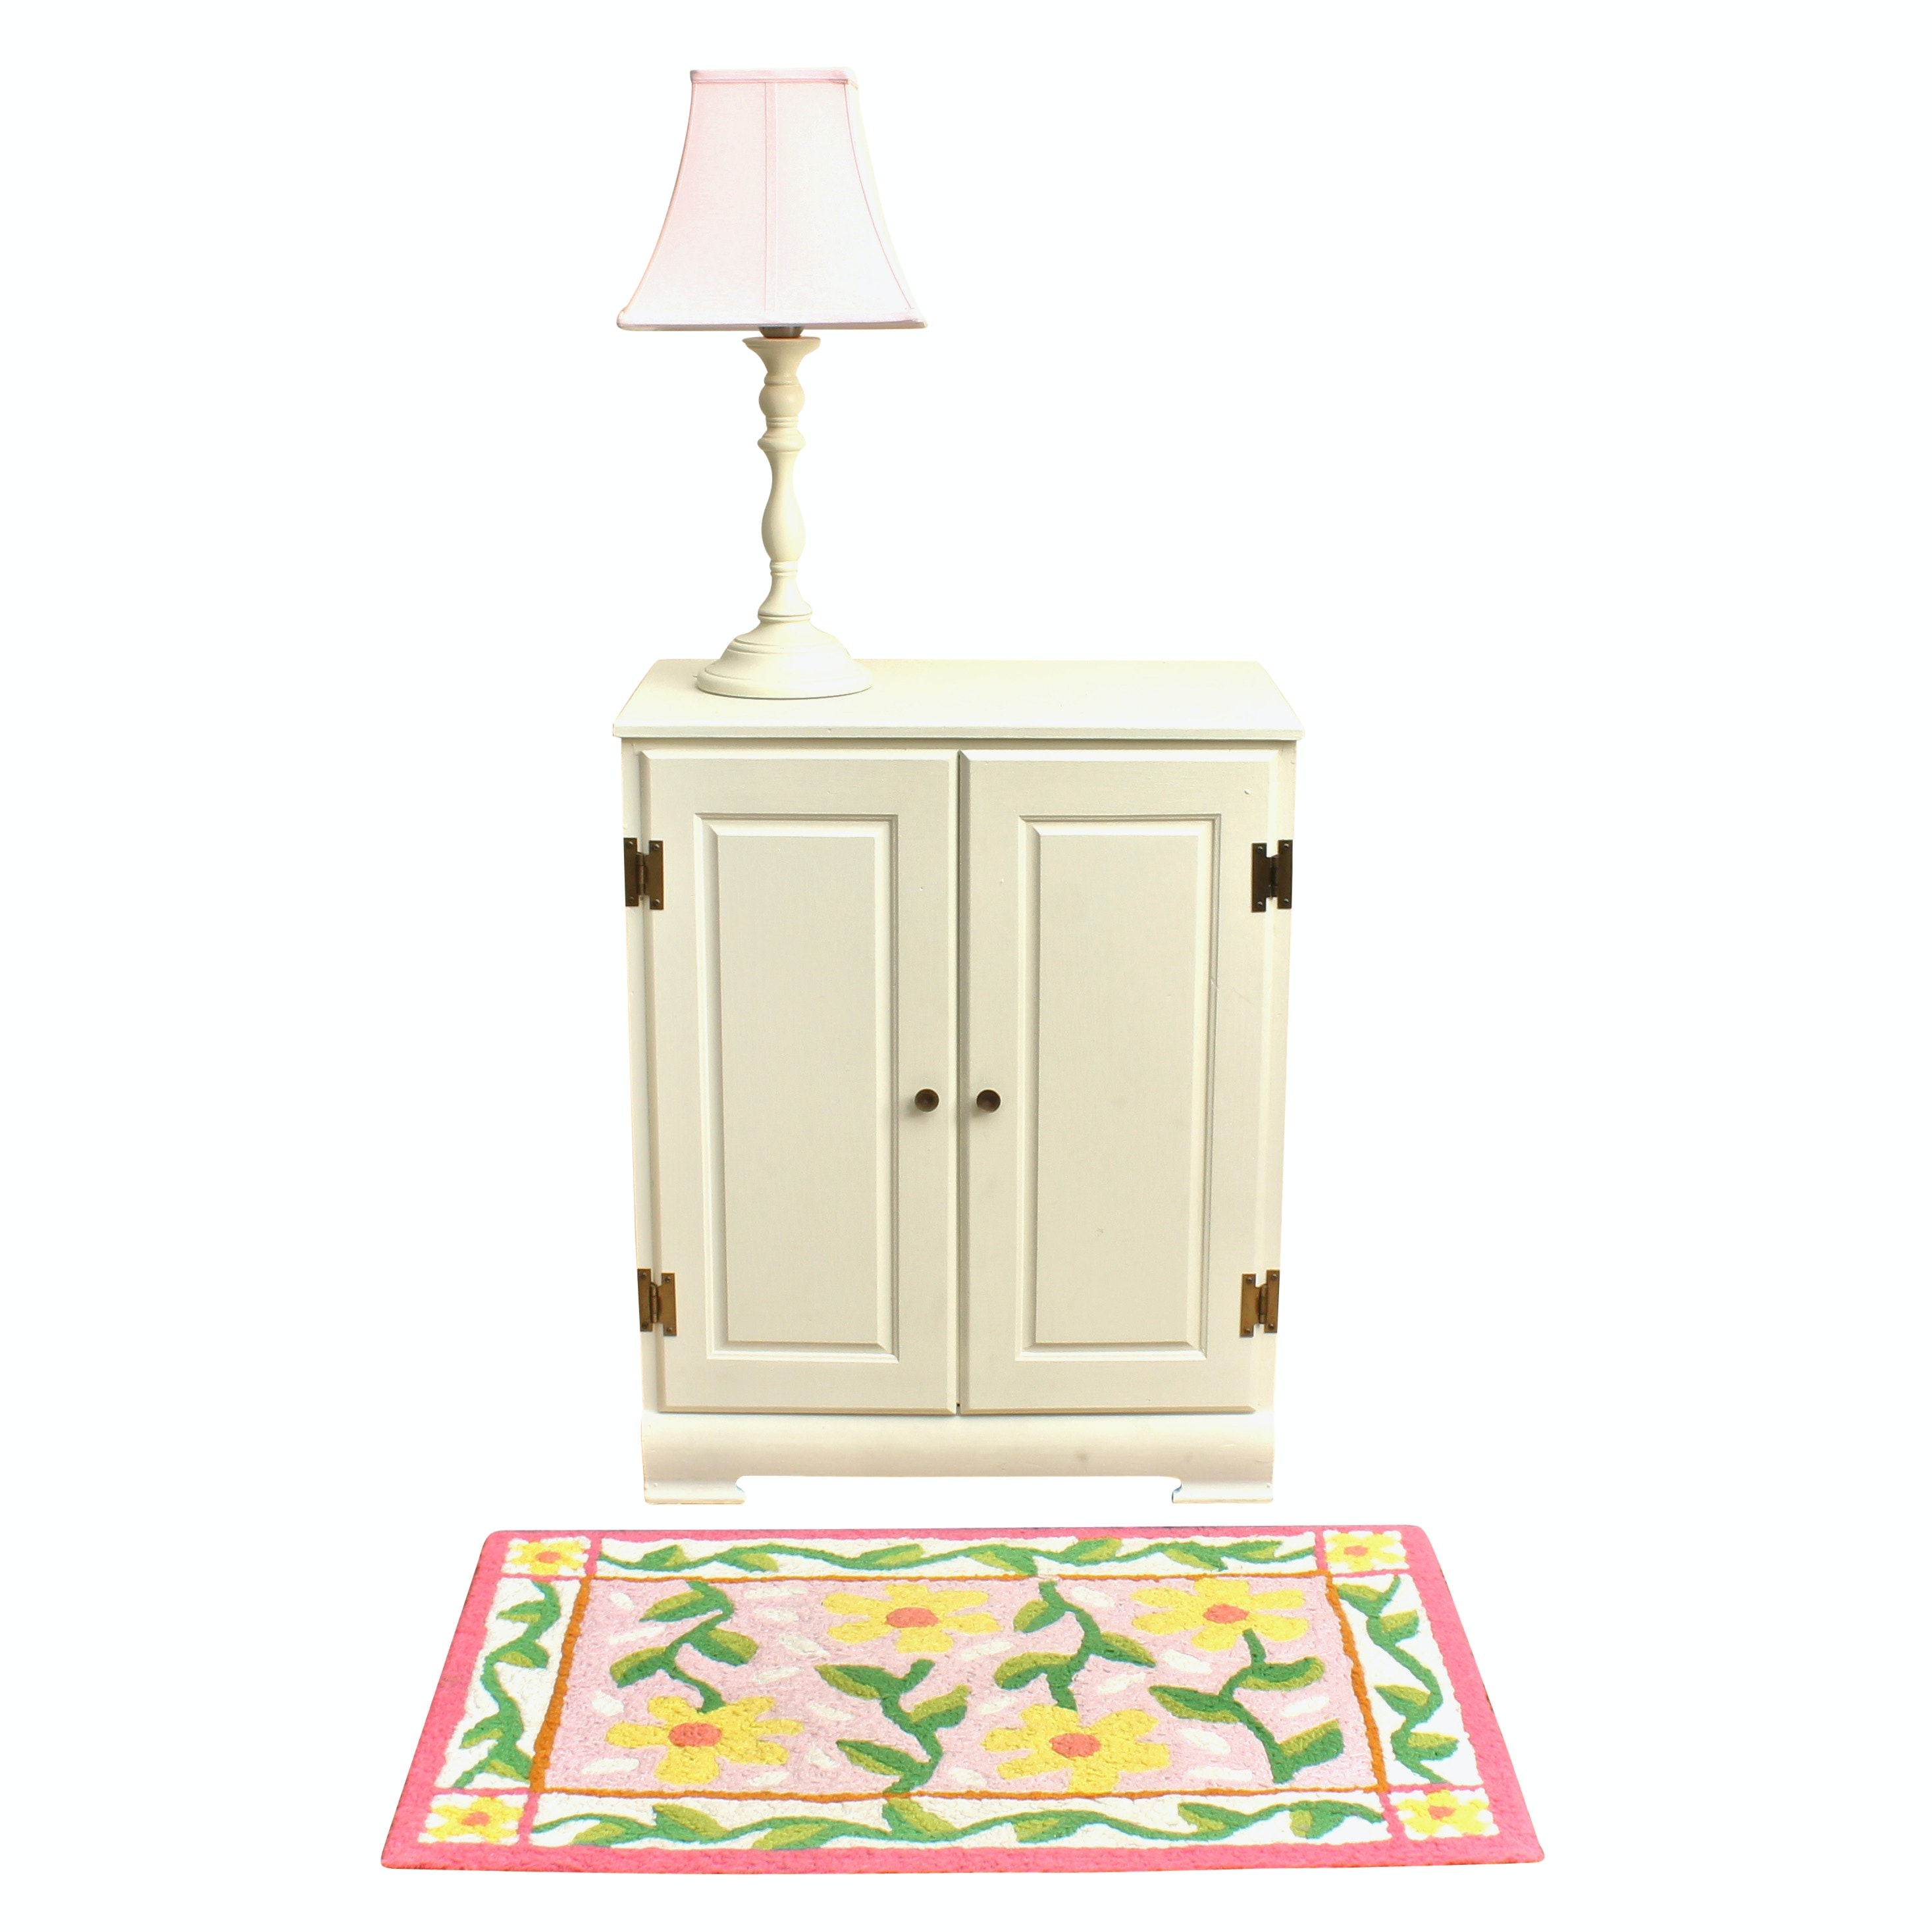 Vintage Painted Cabinet and Pottery Barn Kids Lamp